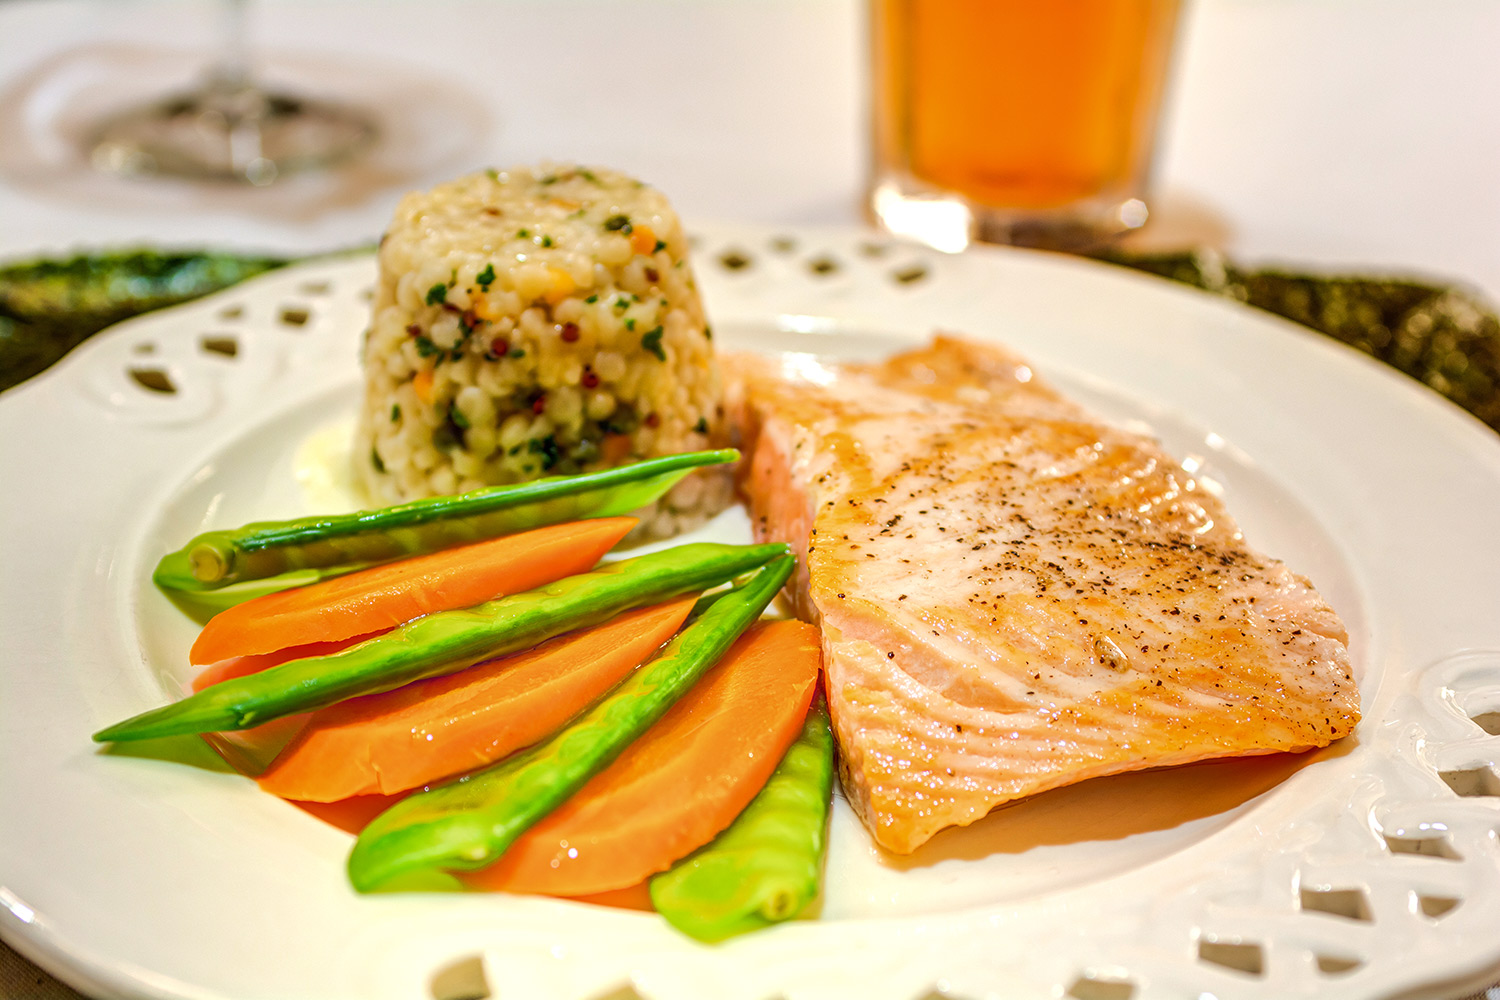 The Gardens at Marysville | Salmon, rice, and vegetables